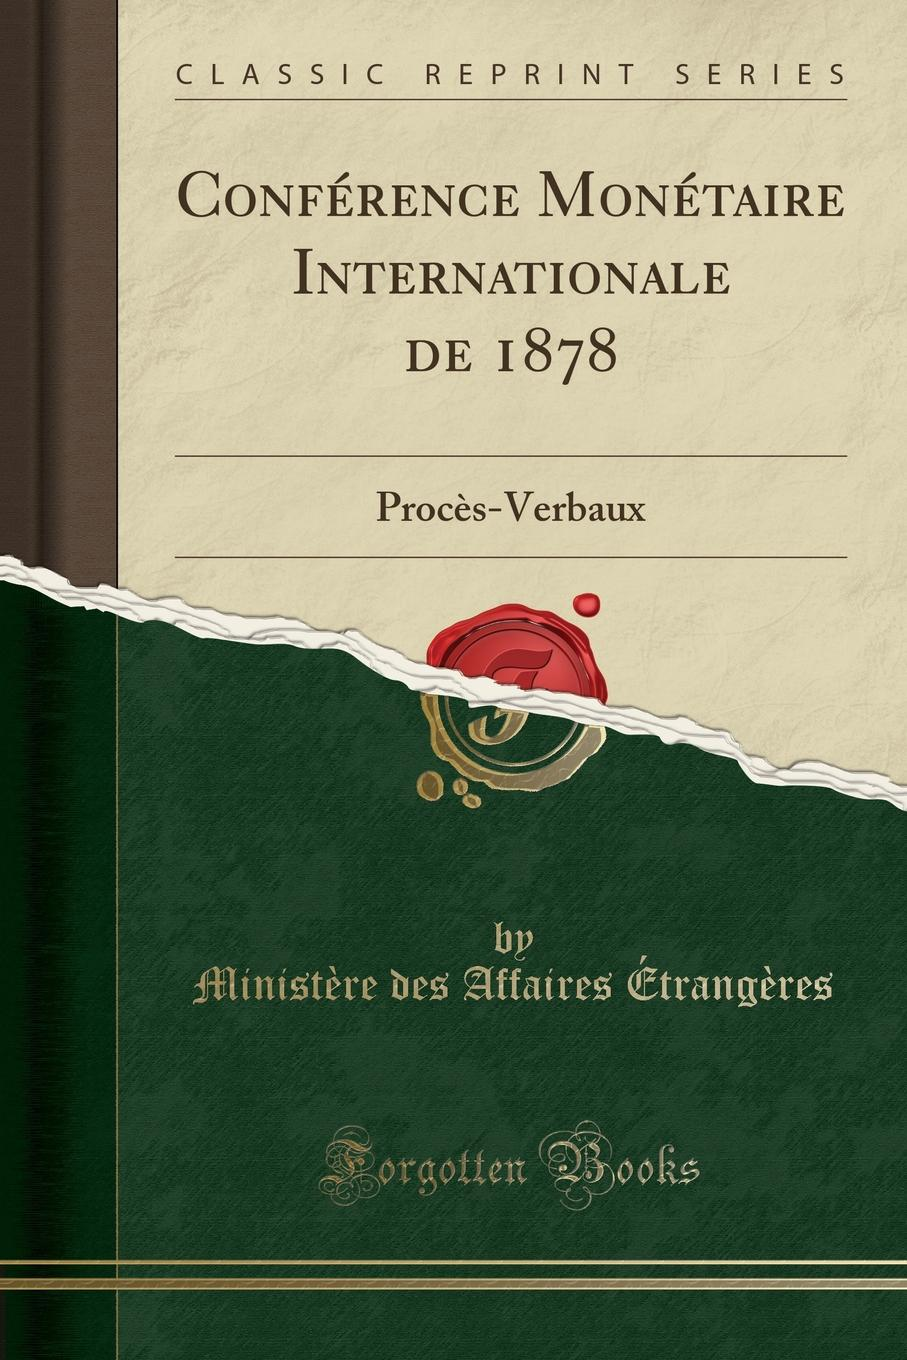 Conference Monetaire Internationale de 1878. Proces-Verbaux (Classic Reprint) Excerpt from ConfР?rence MonР?taire Internationale de 1878...